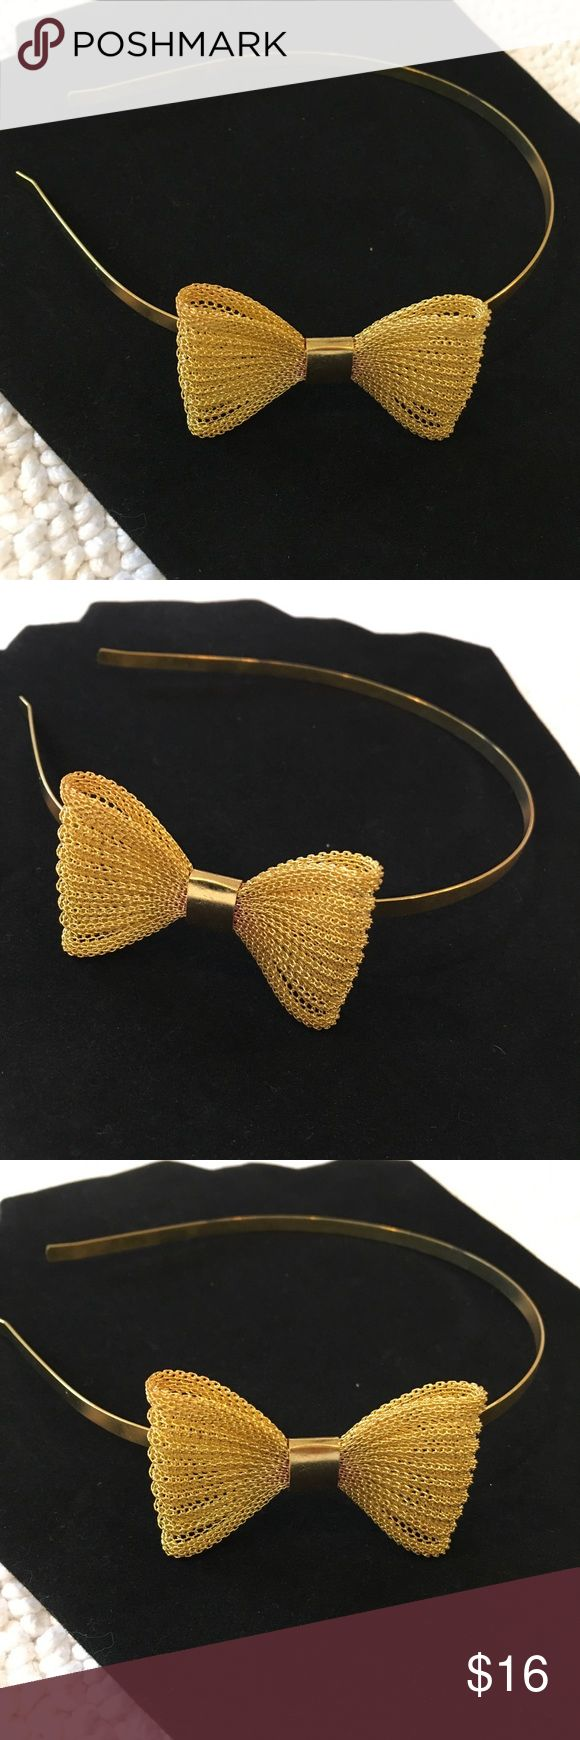 """Gold tone Metal Headband mesh styled bow (AB3) Metal Headbands gold toned w/ metal mesh styled bow on side  Dimensions/Measurements: bow measures 2 ¼"""" x 1 ½"""" New with Tags. The pictures you see are of the exact item you will receive. Accessories Hair Accessories"""